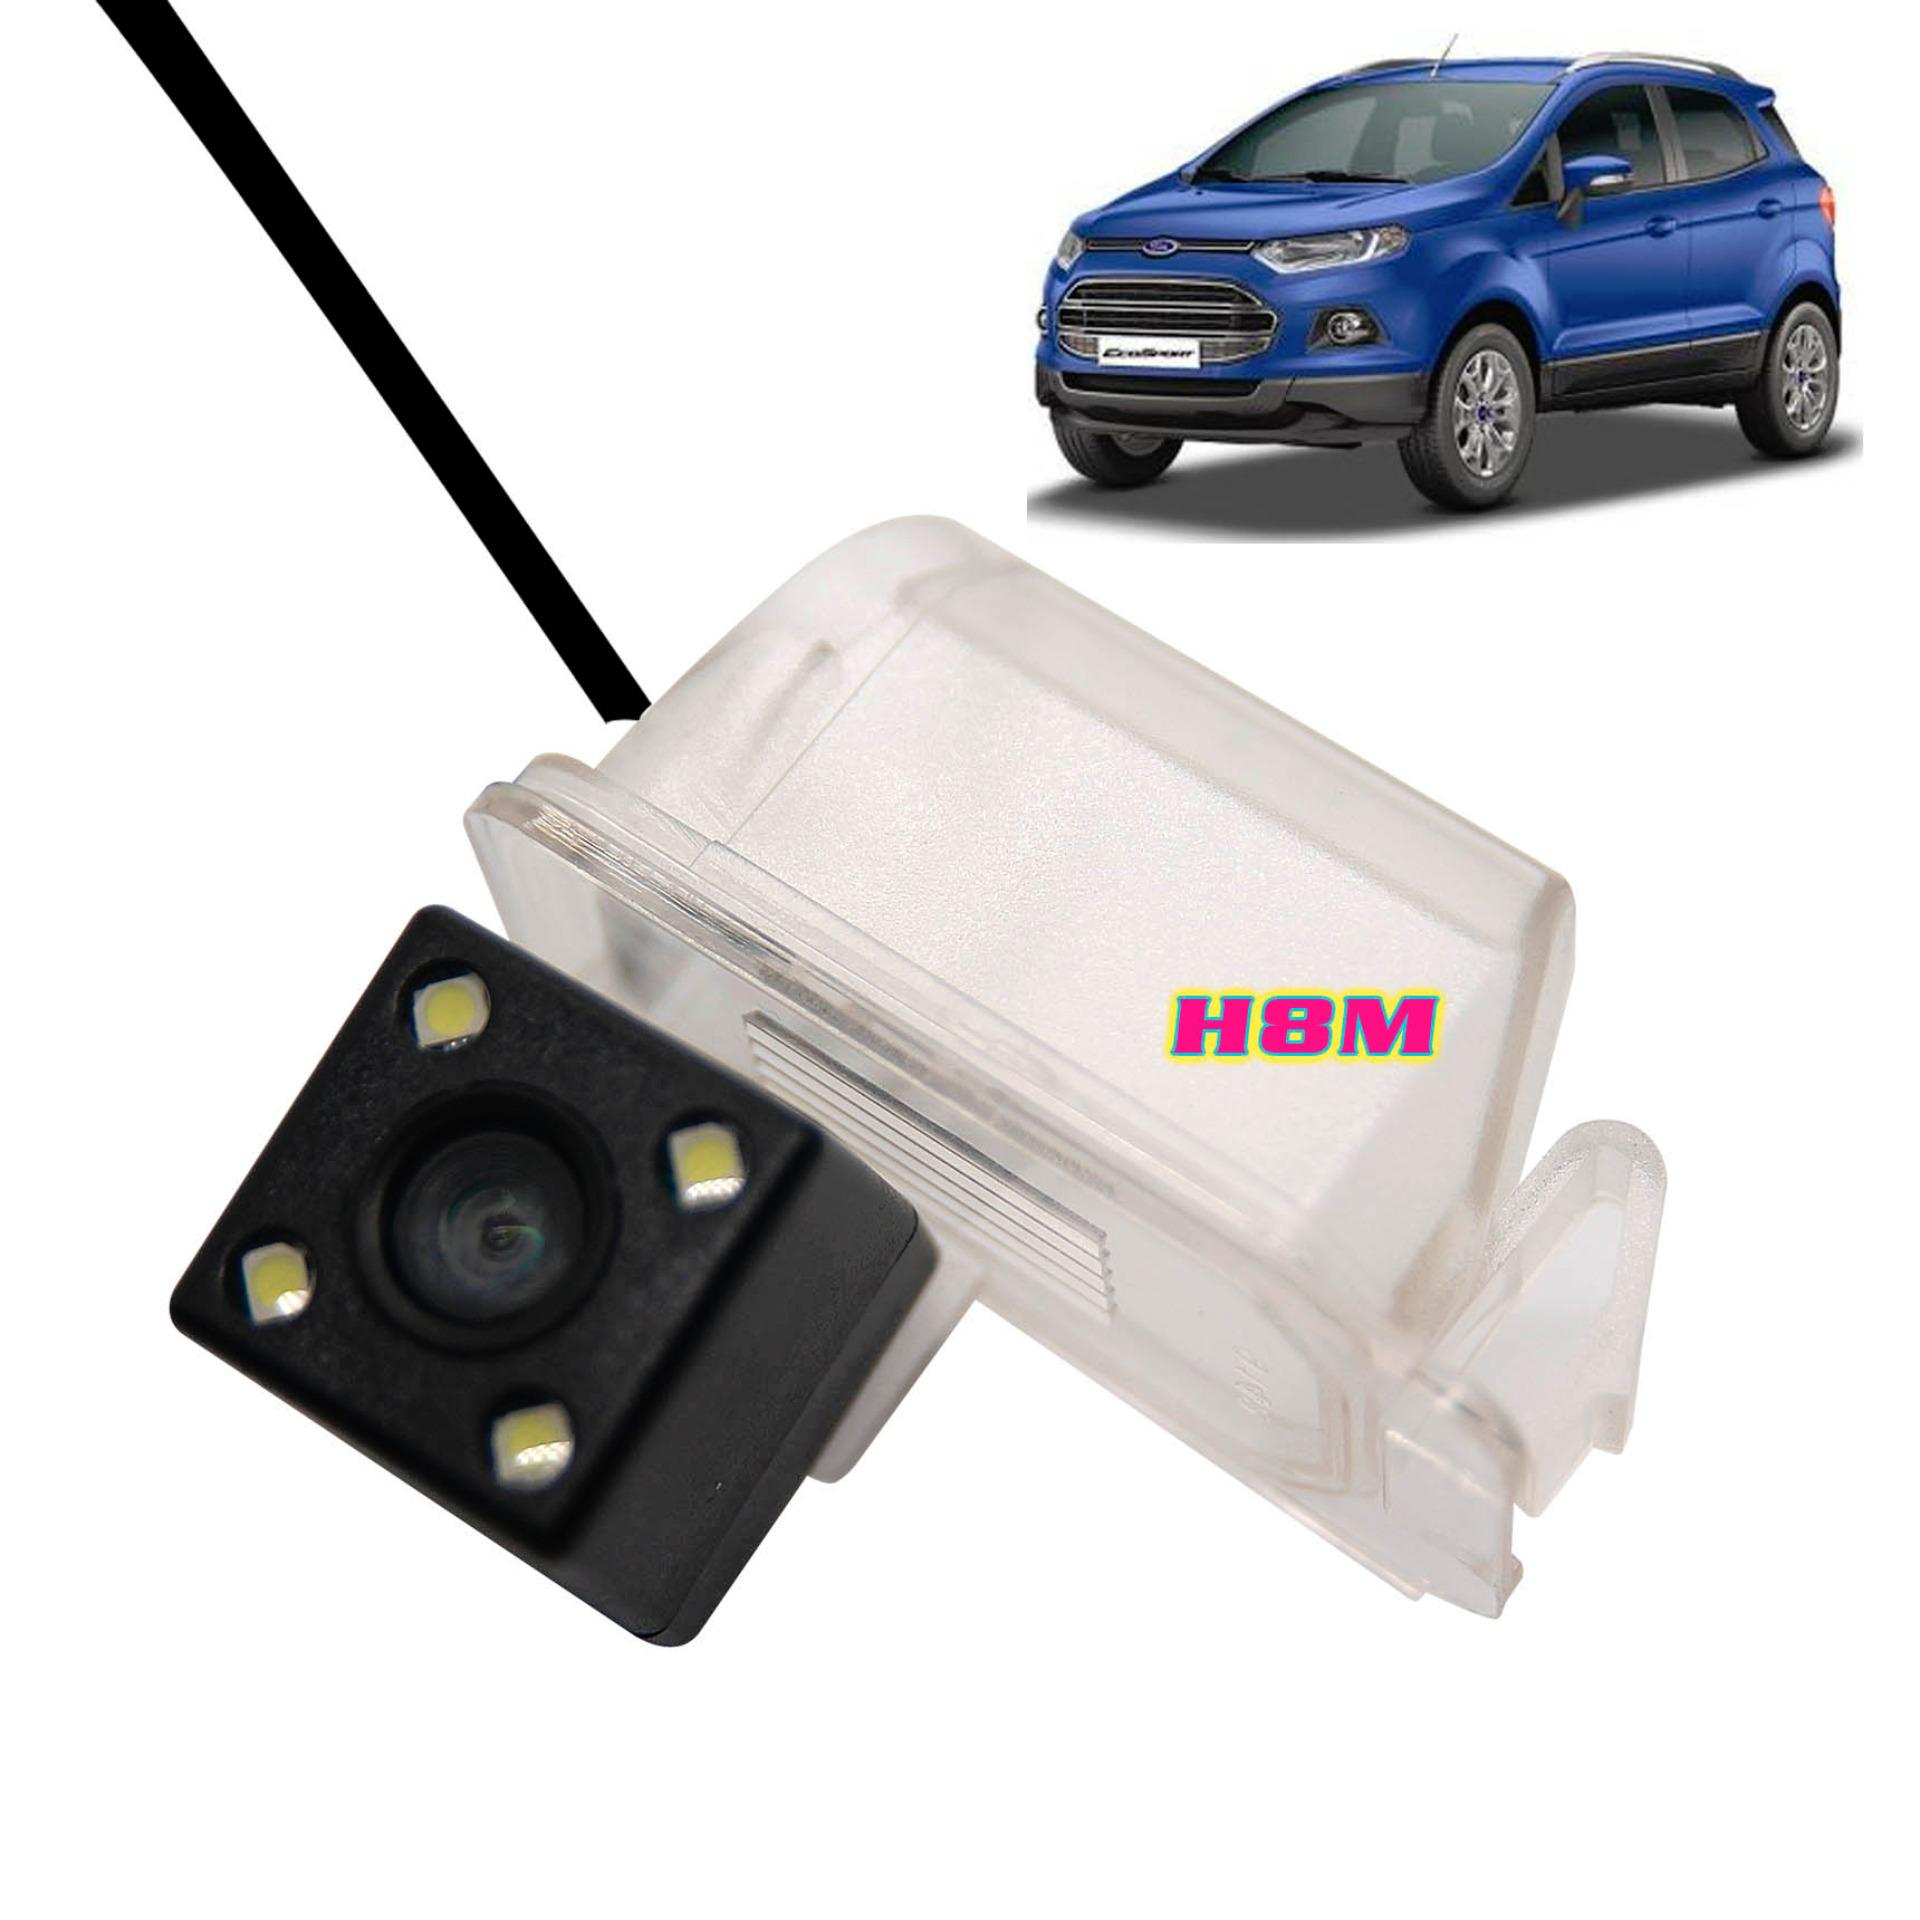 Oem Reverse Camera For Ford Ecosport